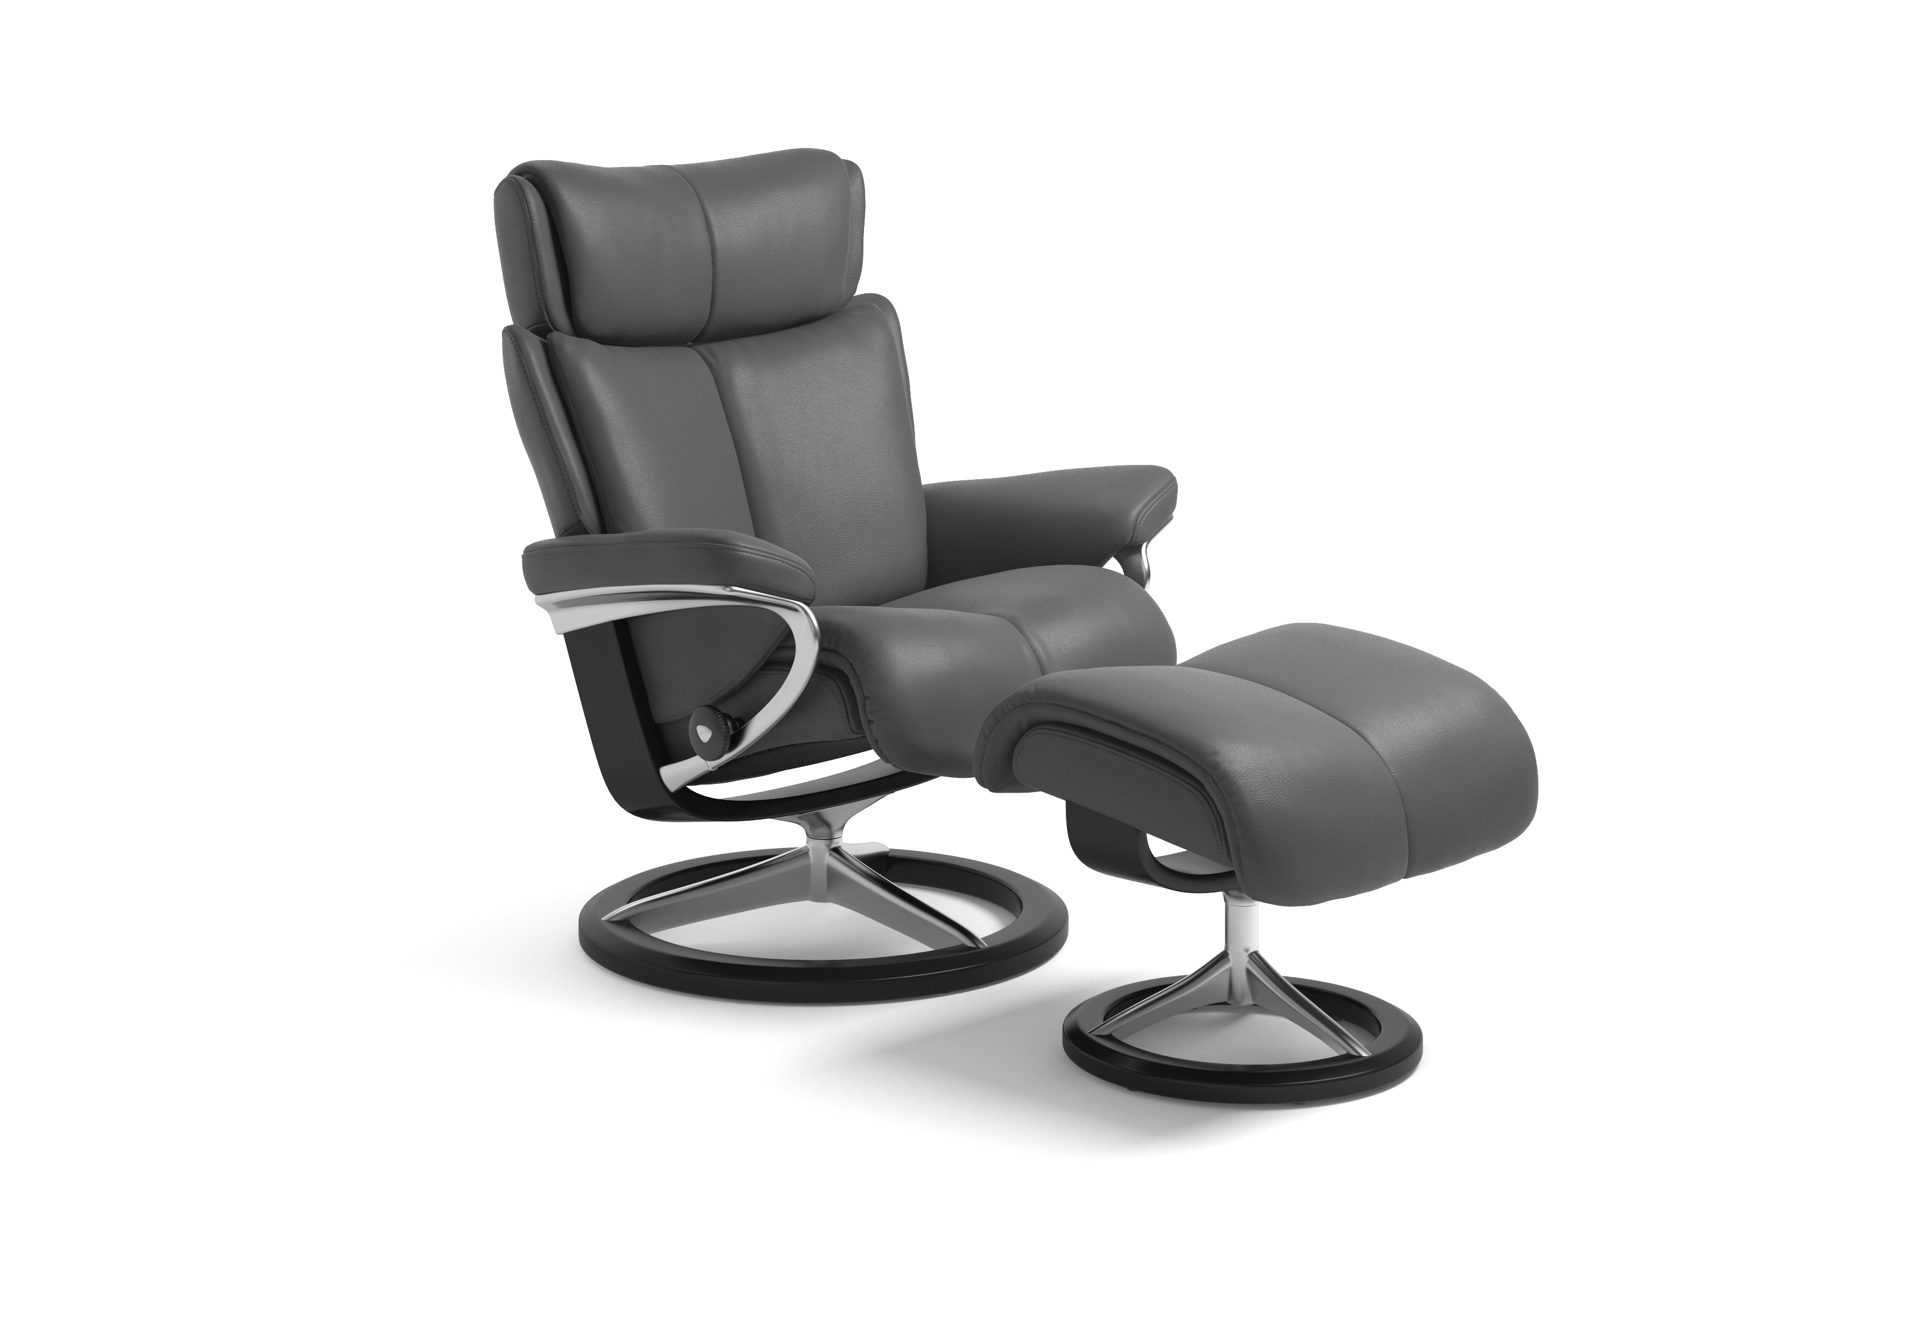 Stressless Relaxsessel Magic Signature M Mit Hocker Leder Paloma Rock Höxter Paderborn Detmold